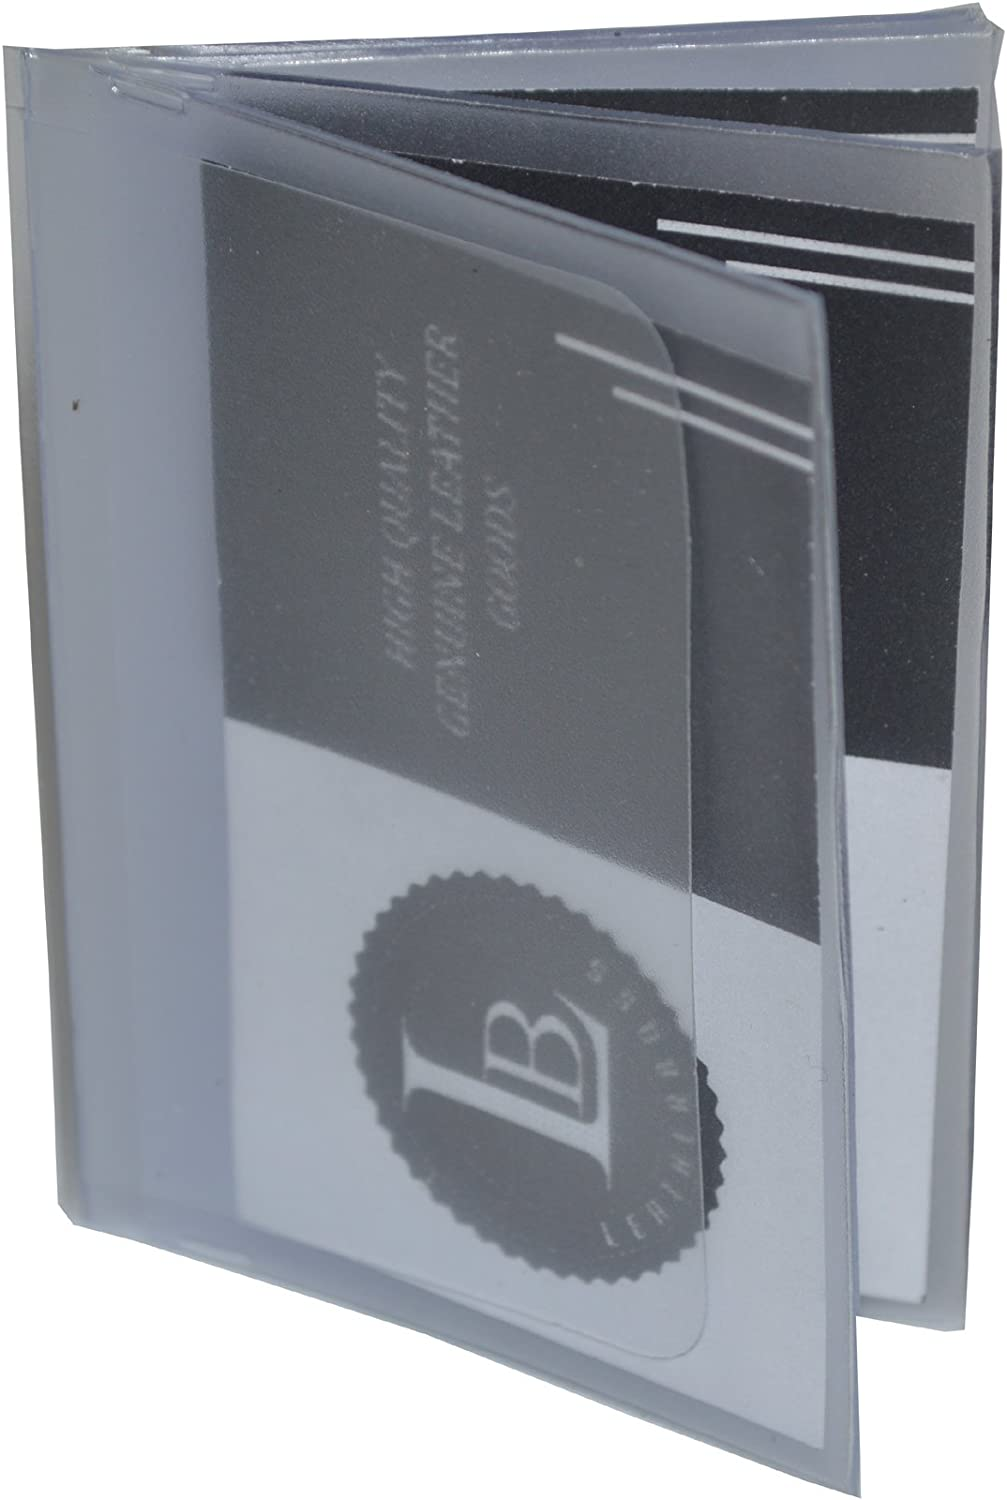 Mens Bifold Six Page Wallet Insert 2.5 X 3.5 Clear Set of 2